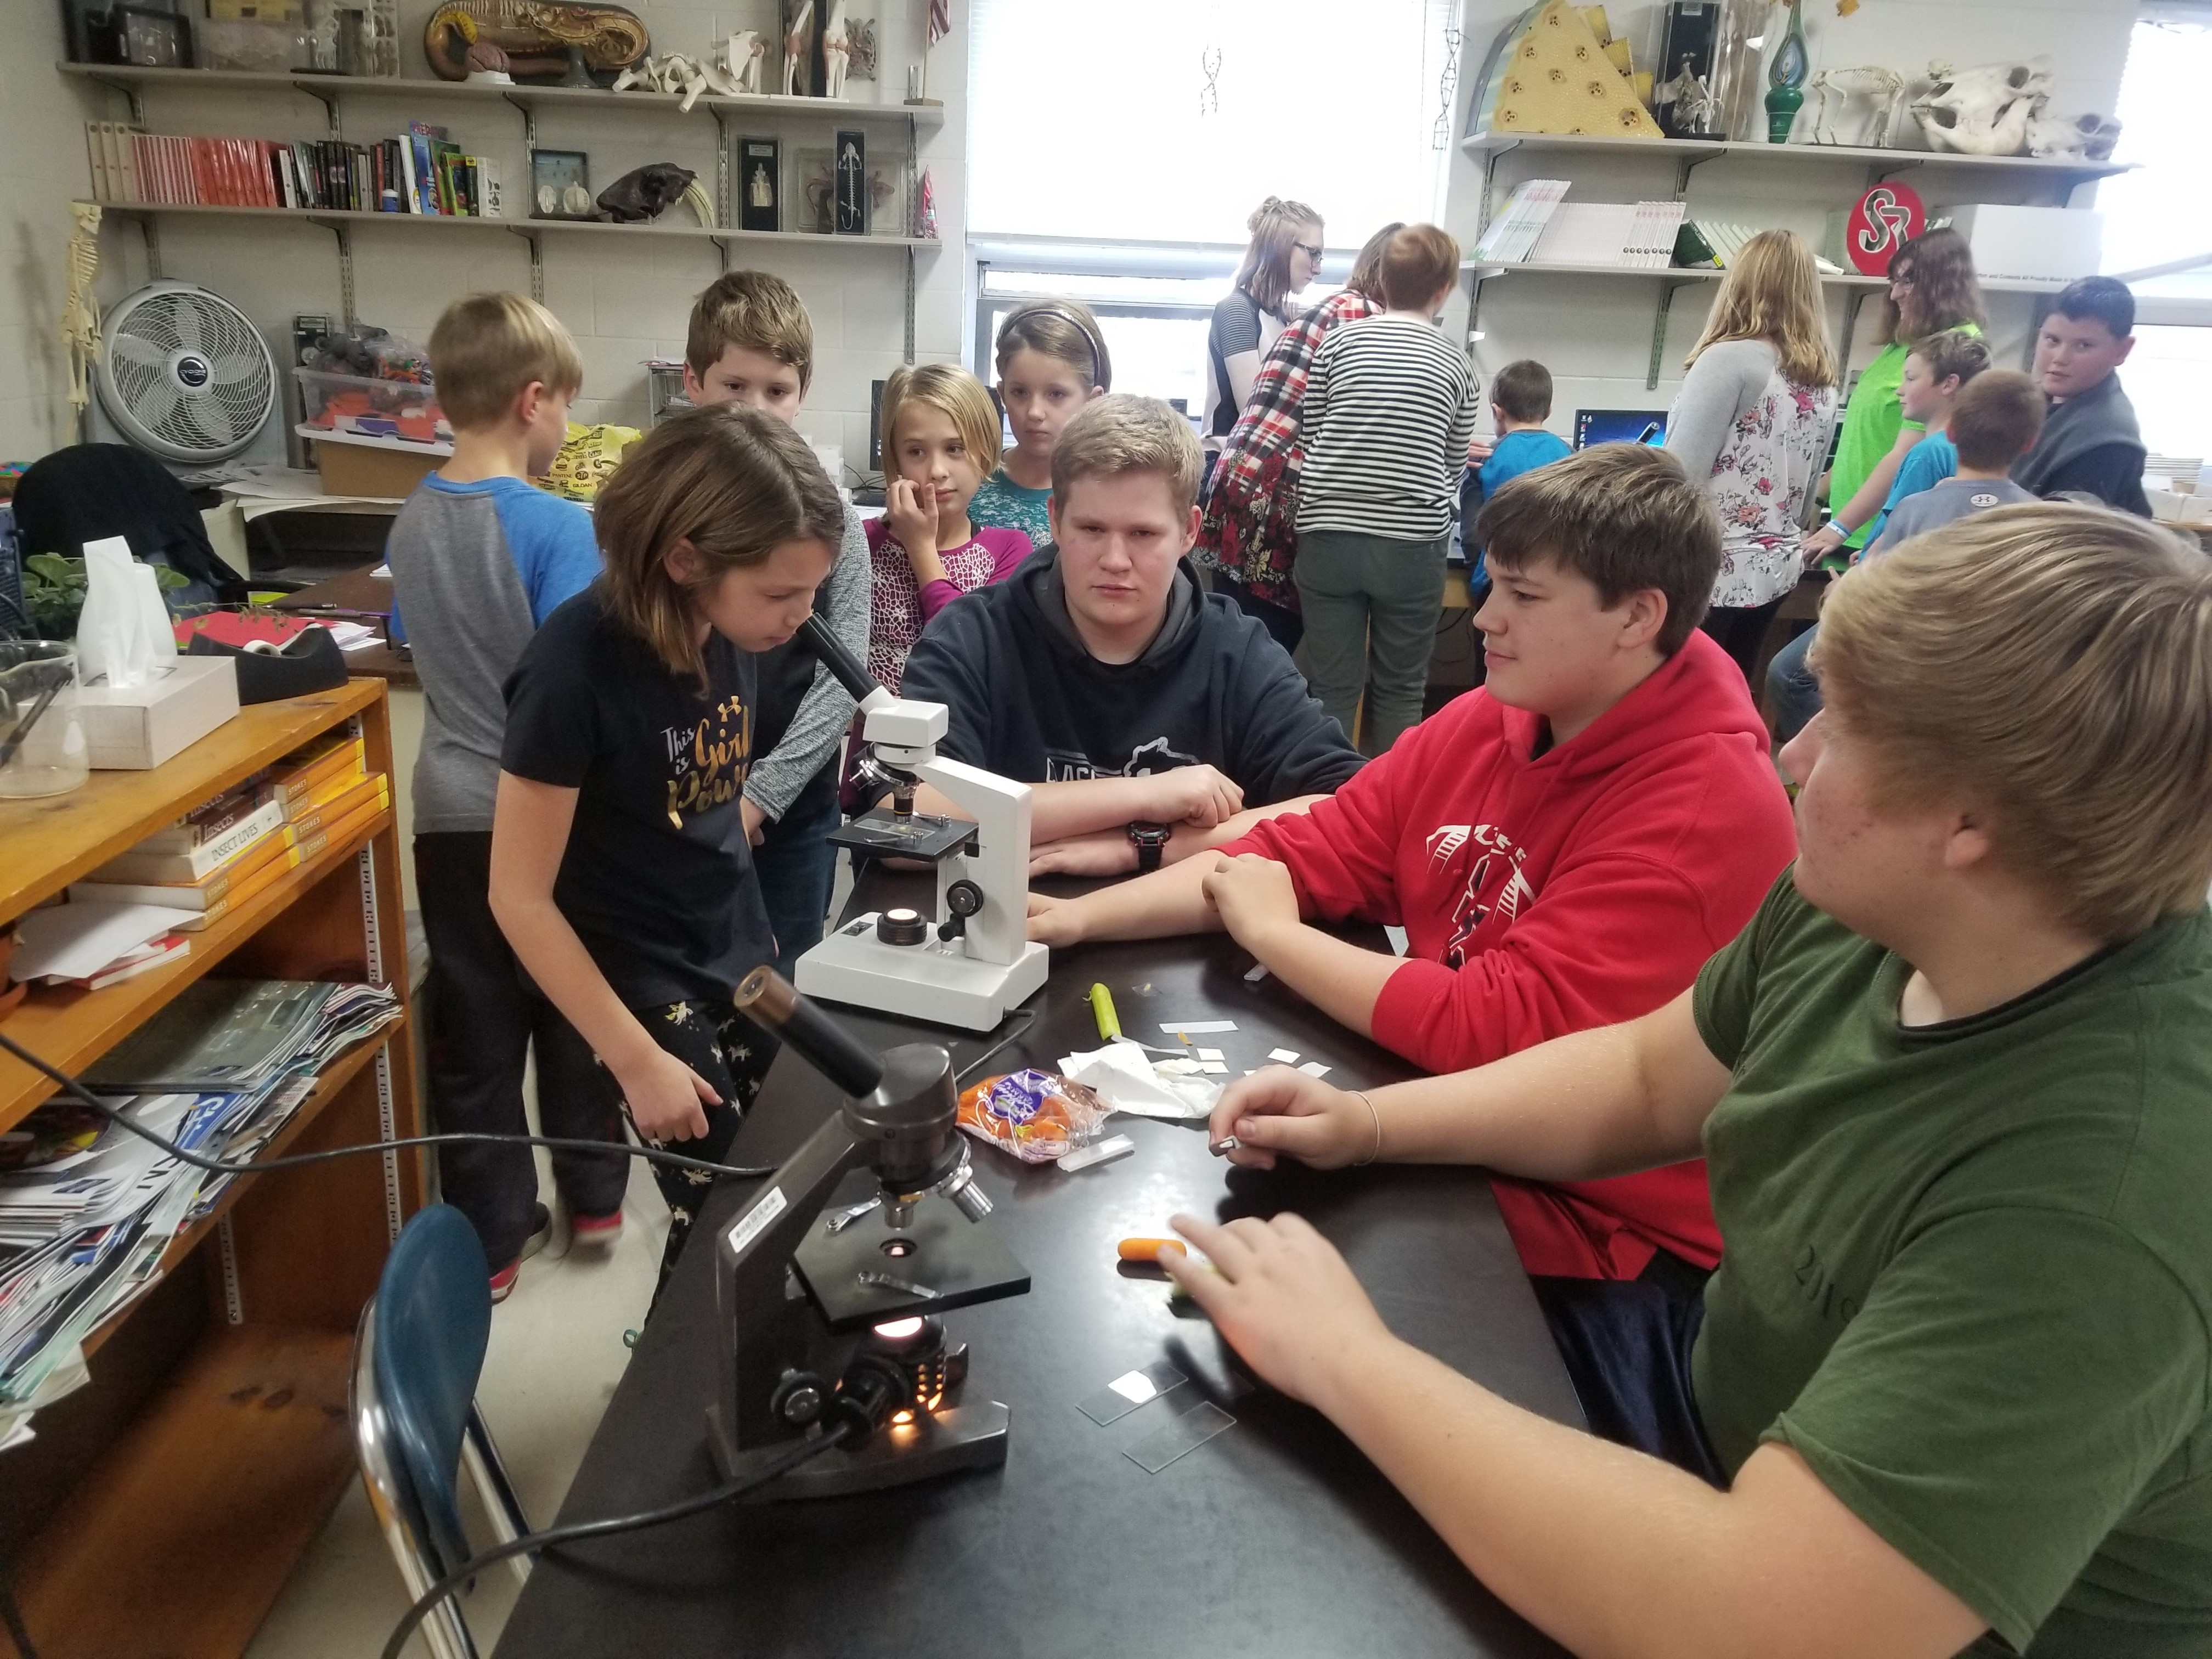 4th graders worked with high school students to explore cells under microscopes. They LOVED it!